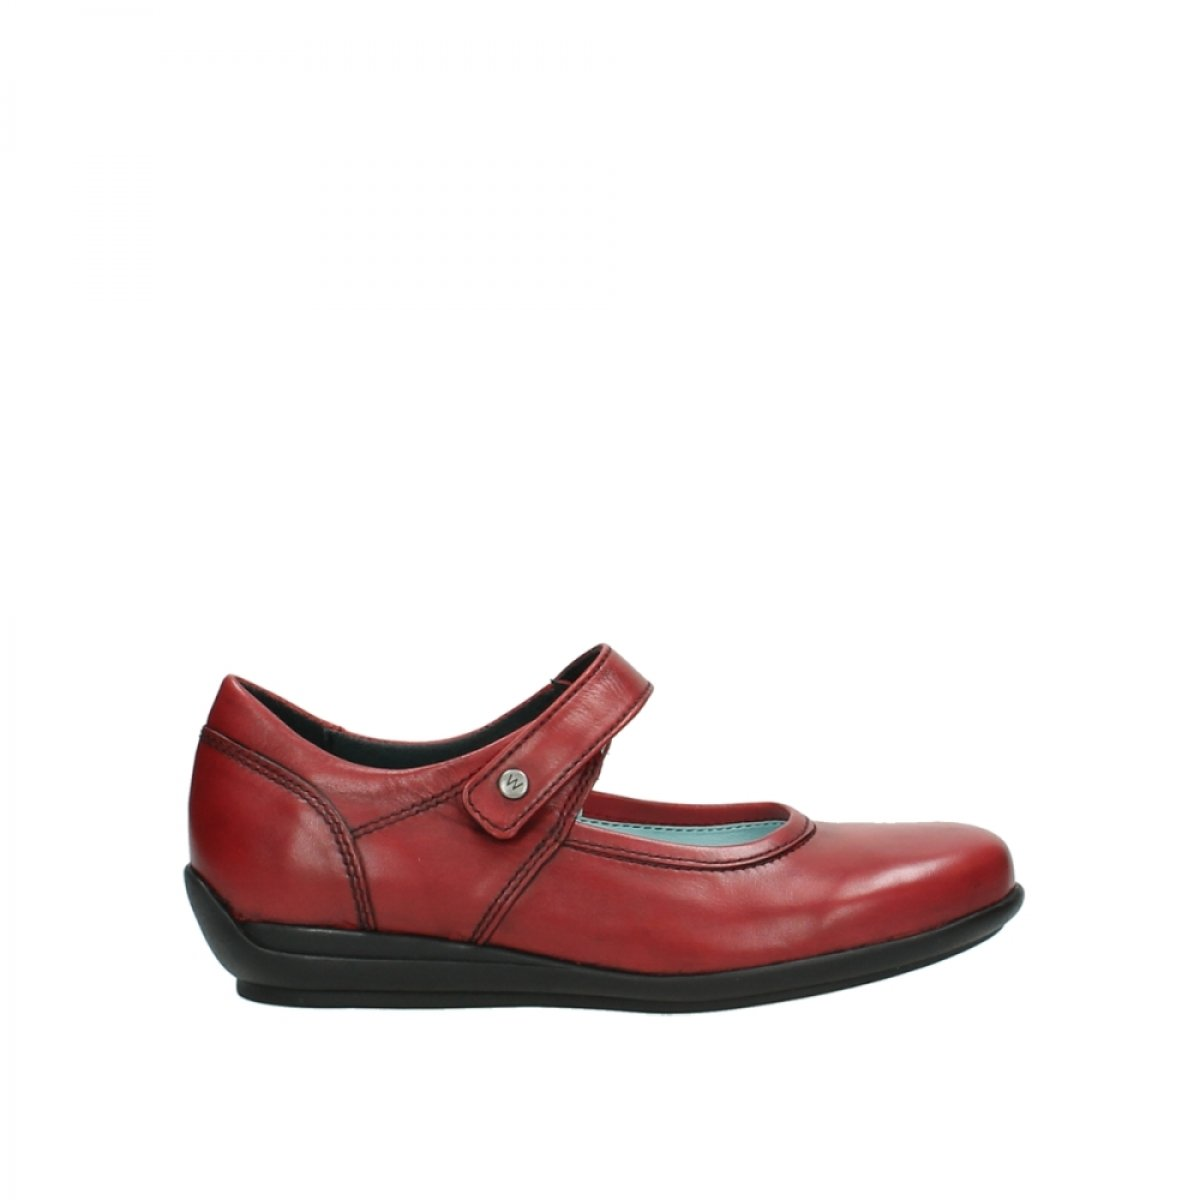 Wolky Comfort Mary Janes Noble B01ITOLIN6 Leather 41 M EU|20500 Red Leather B01ITOLIN6 1173dc